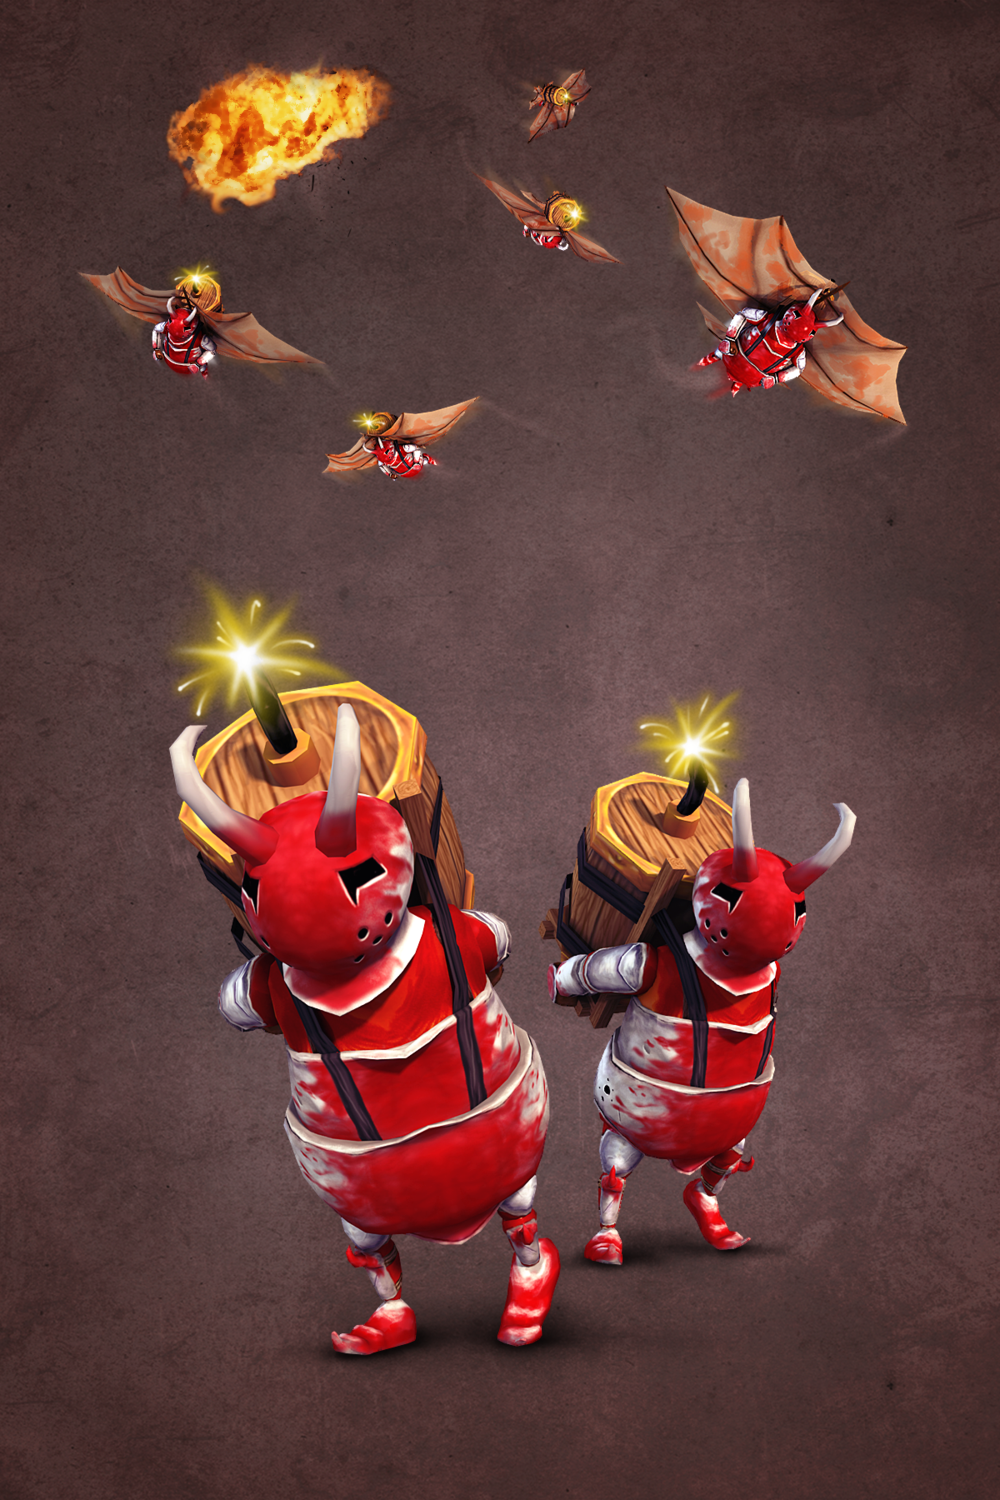 Bomb Goblin and Bomb Glider: 2 New Rage Enemies